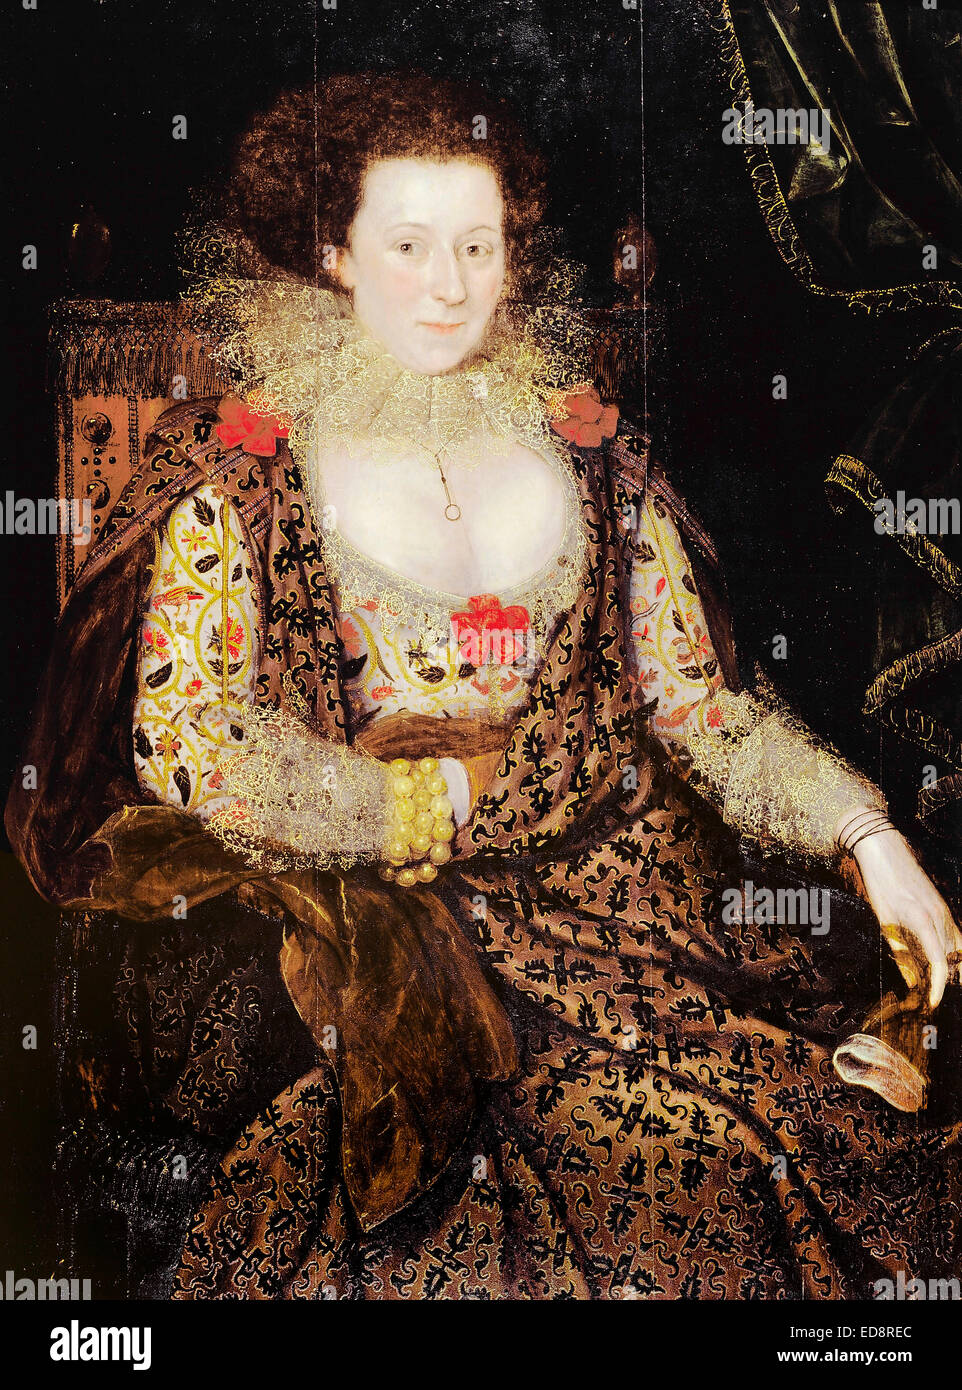 Marcus the younger Gheeraerts, Portrait of a Lady. Circa 1615-1618. Oil on panel. Dulwich Picture Gallery, London, - Stock Image